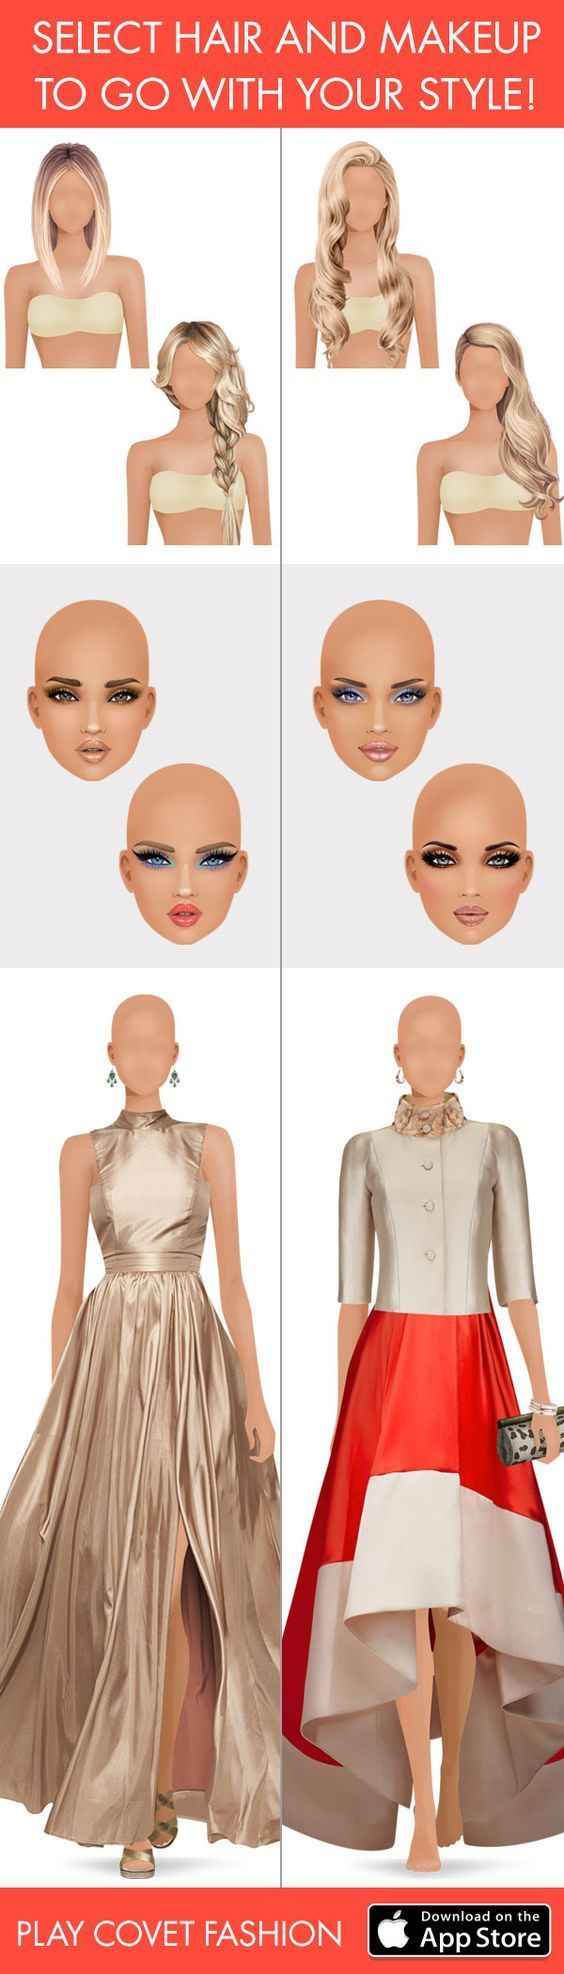 Covet Fashion is the obsession worthy shopping and styling app available. Discover new brands, express your style and shop new trends.